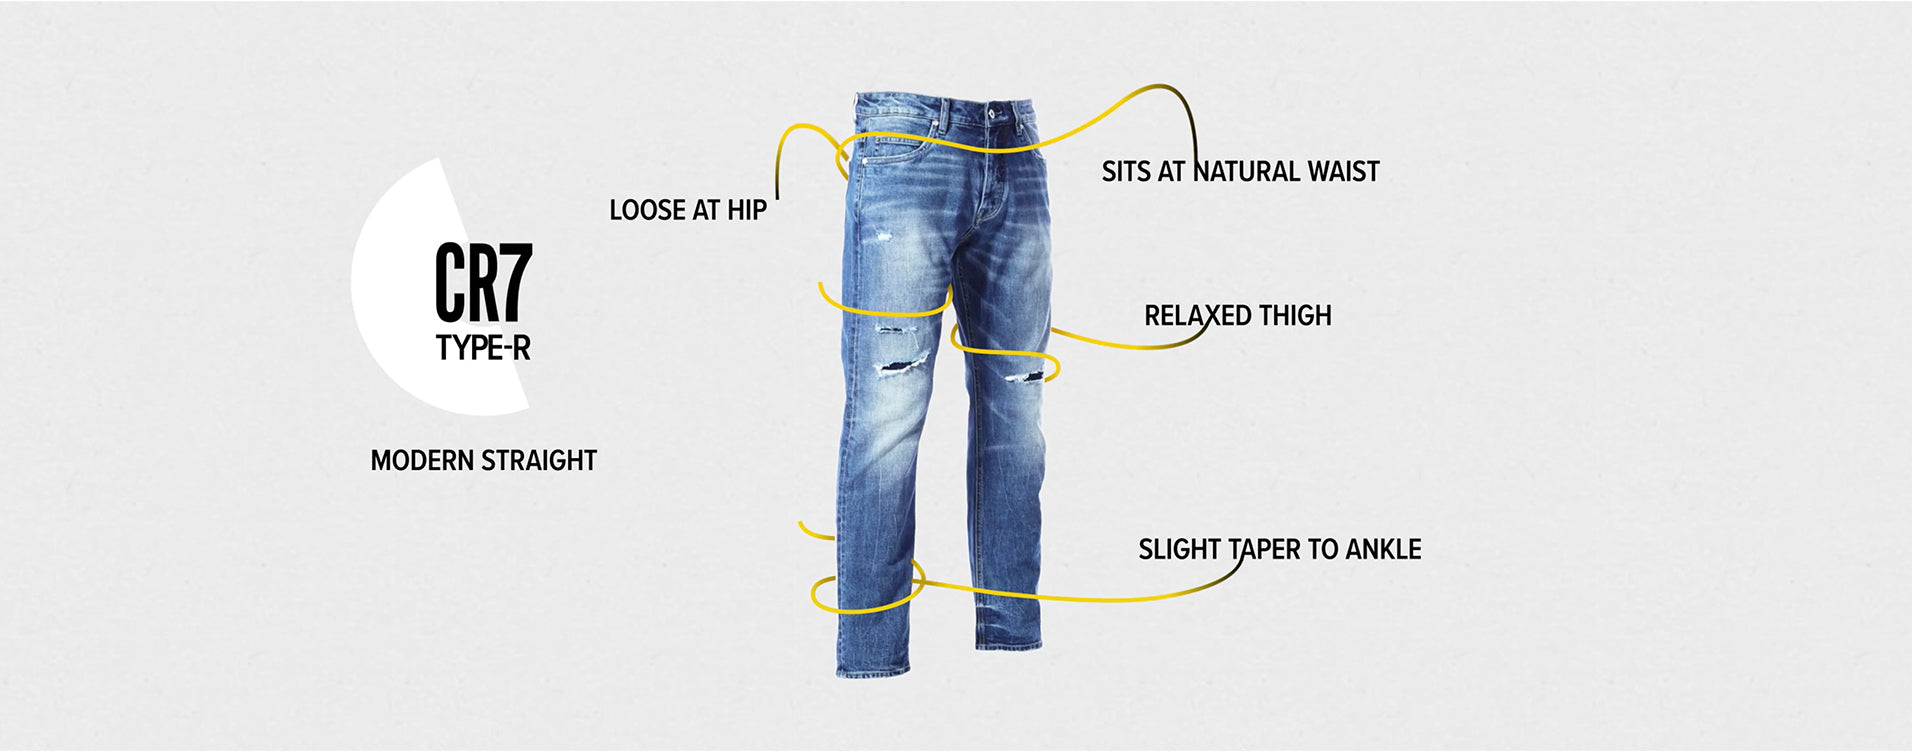 TYPE-R MODERN STRAIGHT JEAN - CLASSIC BLUE fit